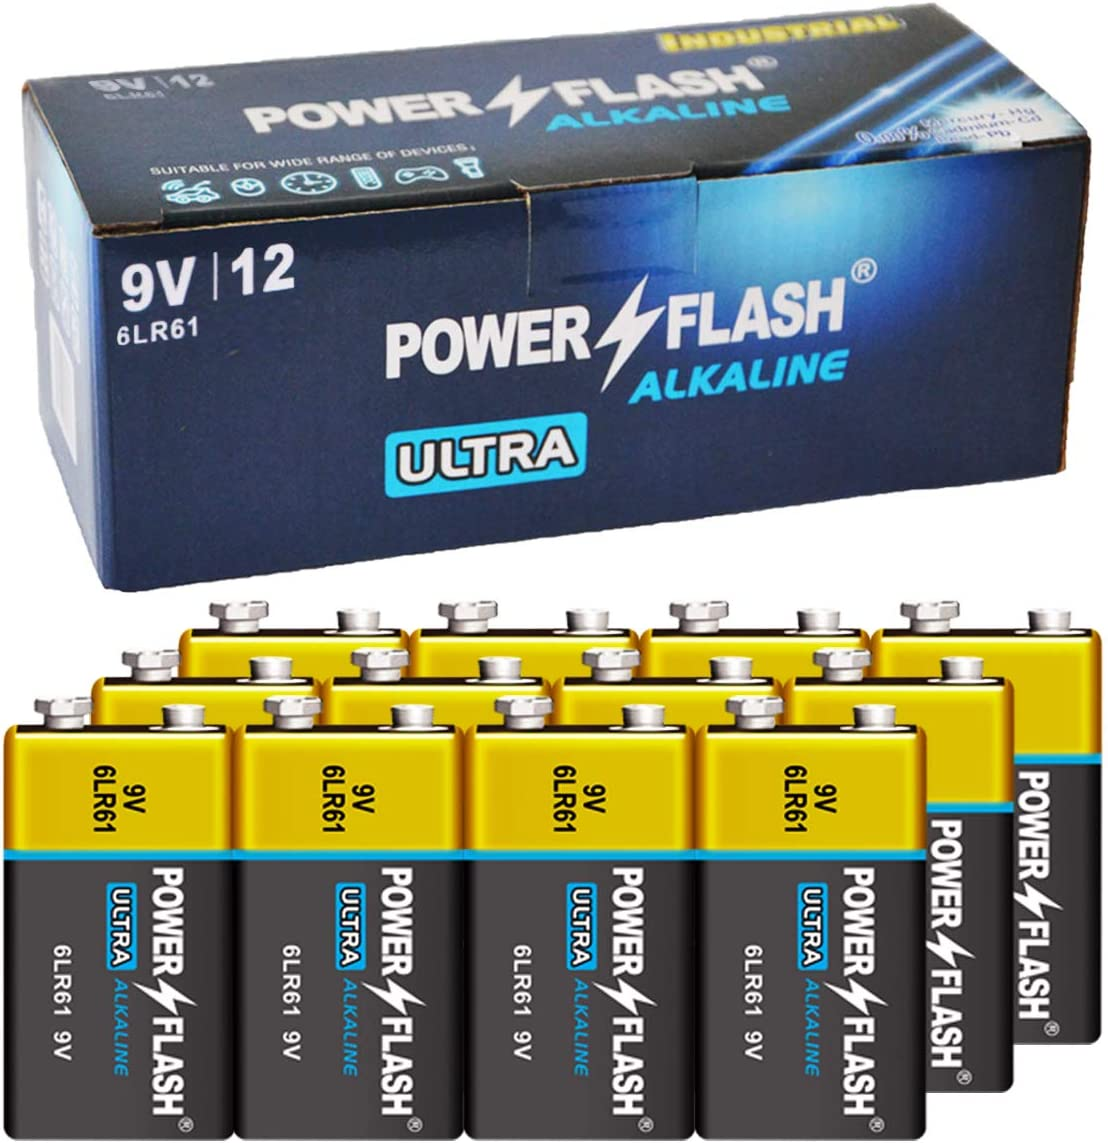 POWER FLASH 9V Batteries with Fresh Industrial - sold out 12 Pack Date Sale SALE% OFF